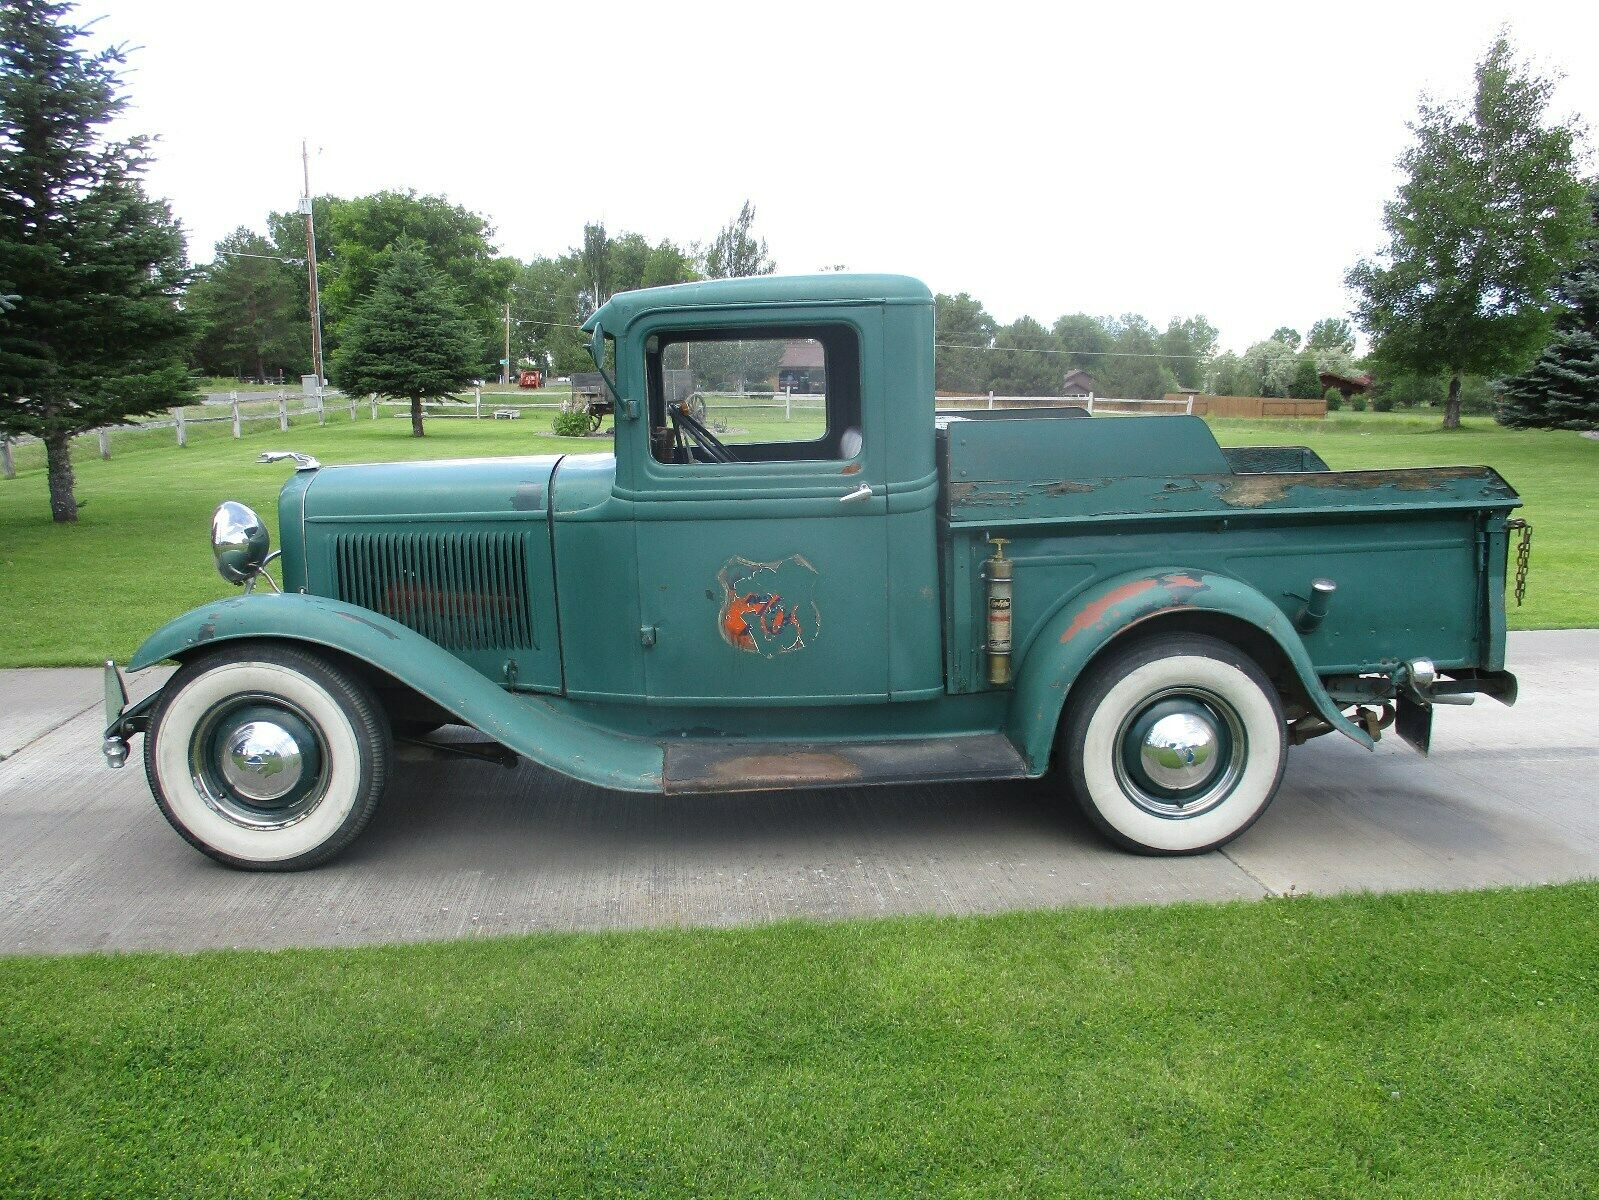 Found: This 1932 Ford Truck Is An Old School California Hot Rod That Likely Hauled Stuff To Bonneville!